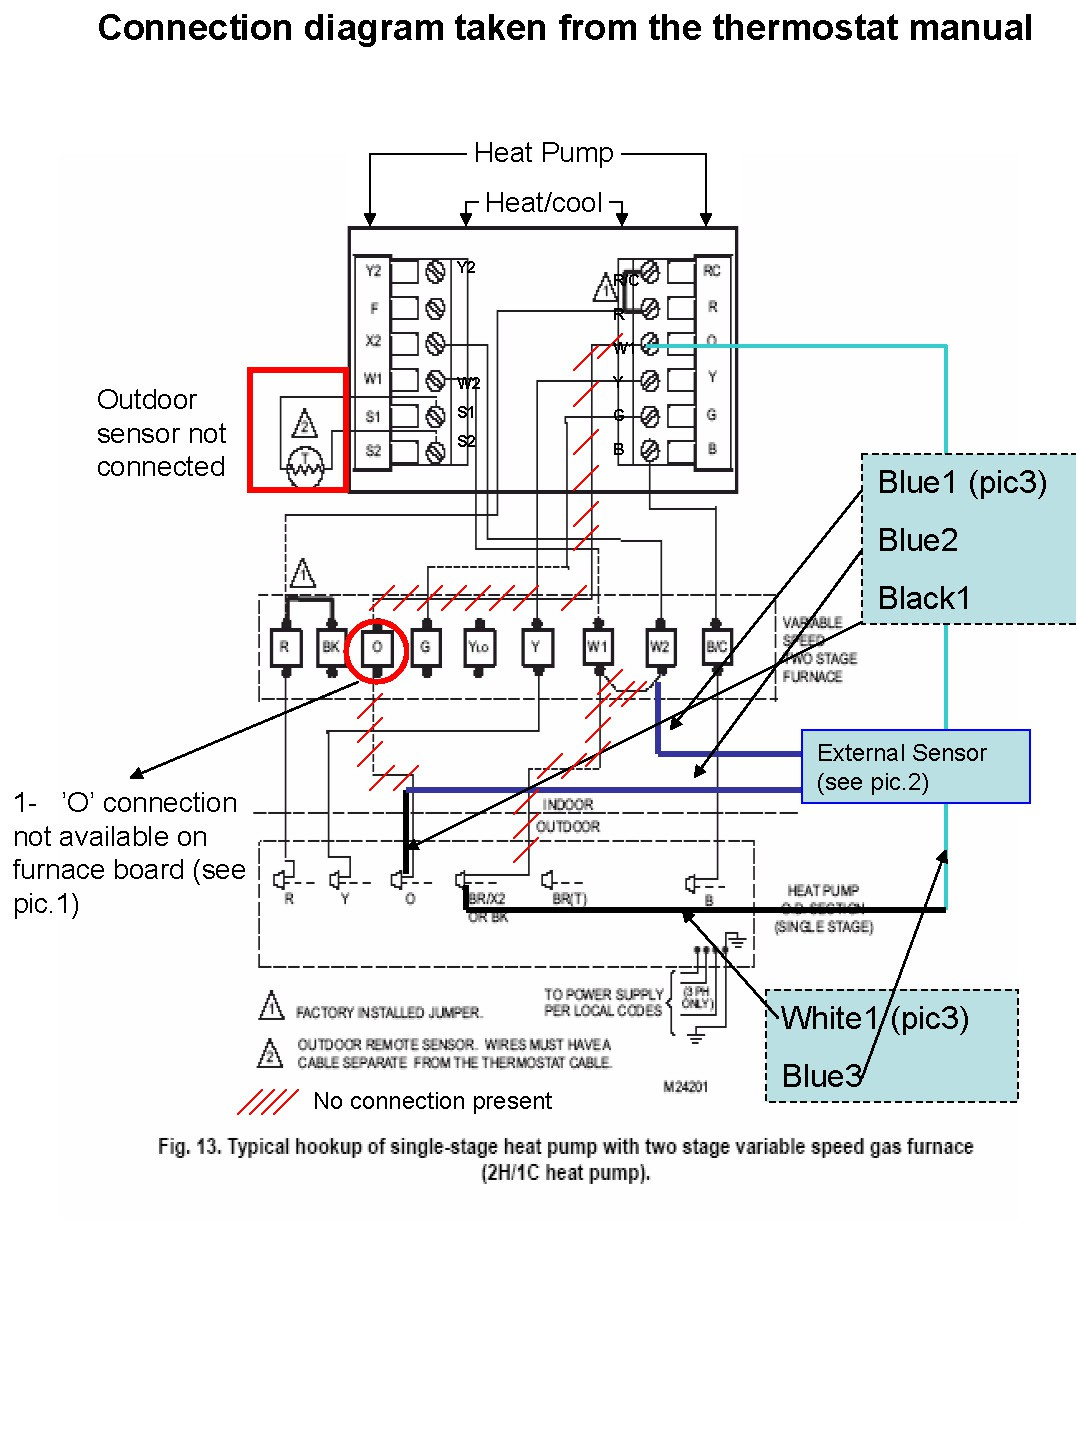 Single stage thermostat wiring diagram collection wiring diagram single stage thermostat wiring diagram collection trane thermostat wiring diagram lovely home heater thermostat wiring swarovskicordoba Gallery